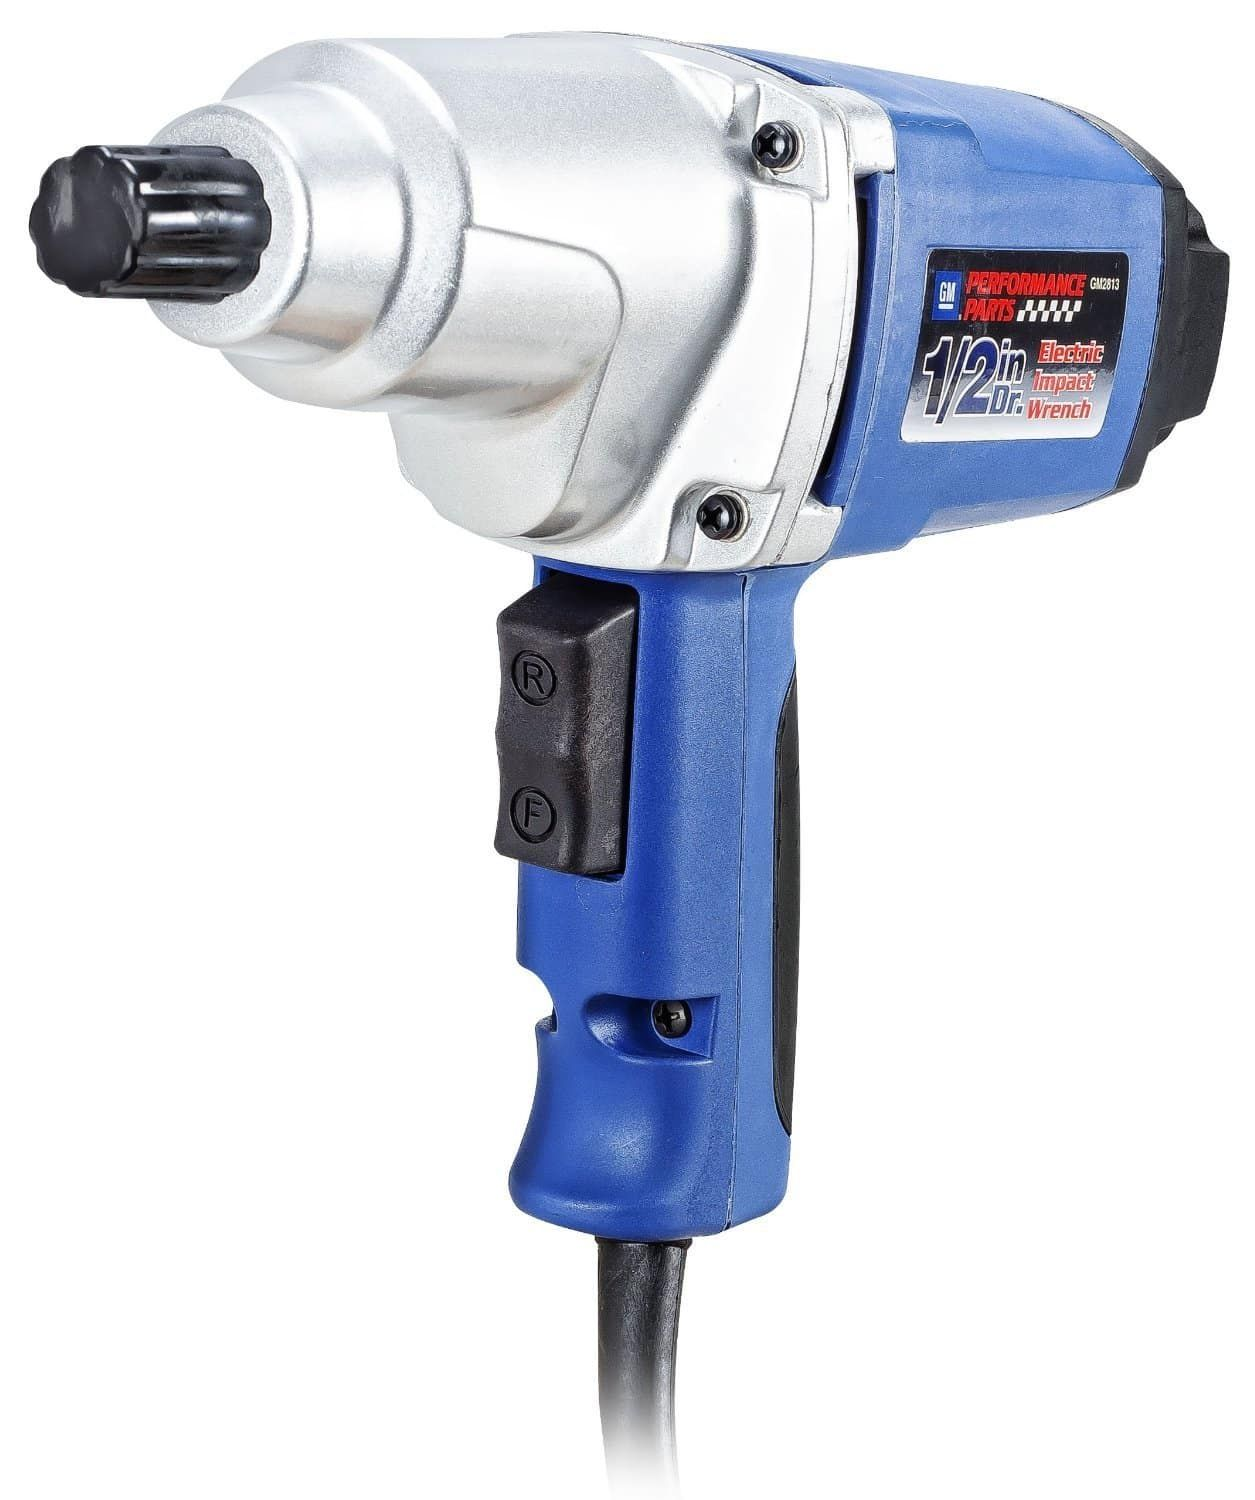 Gm Performance Parts Electric Impact Wrench